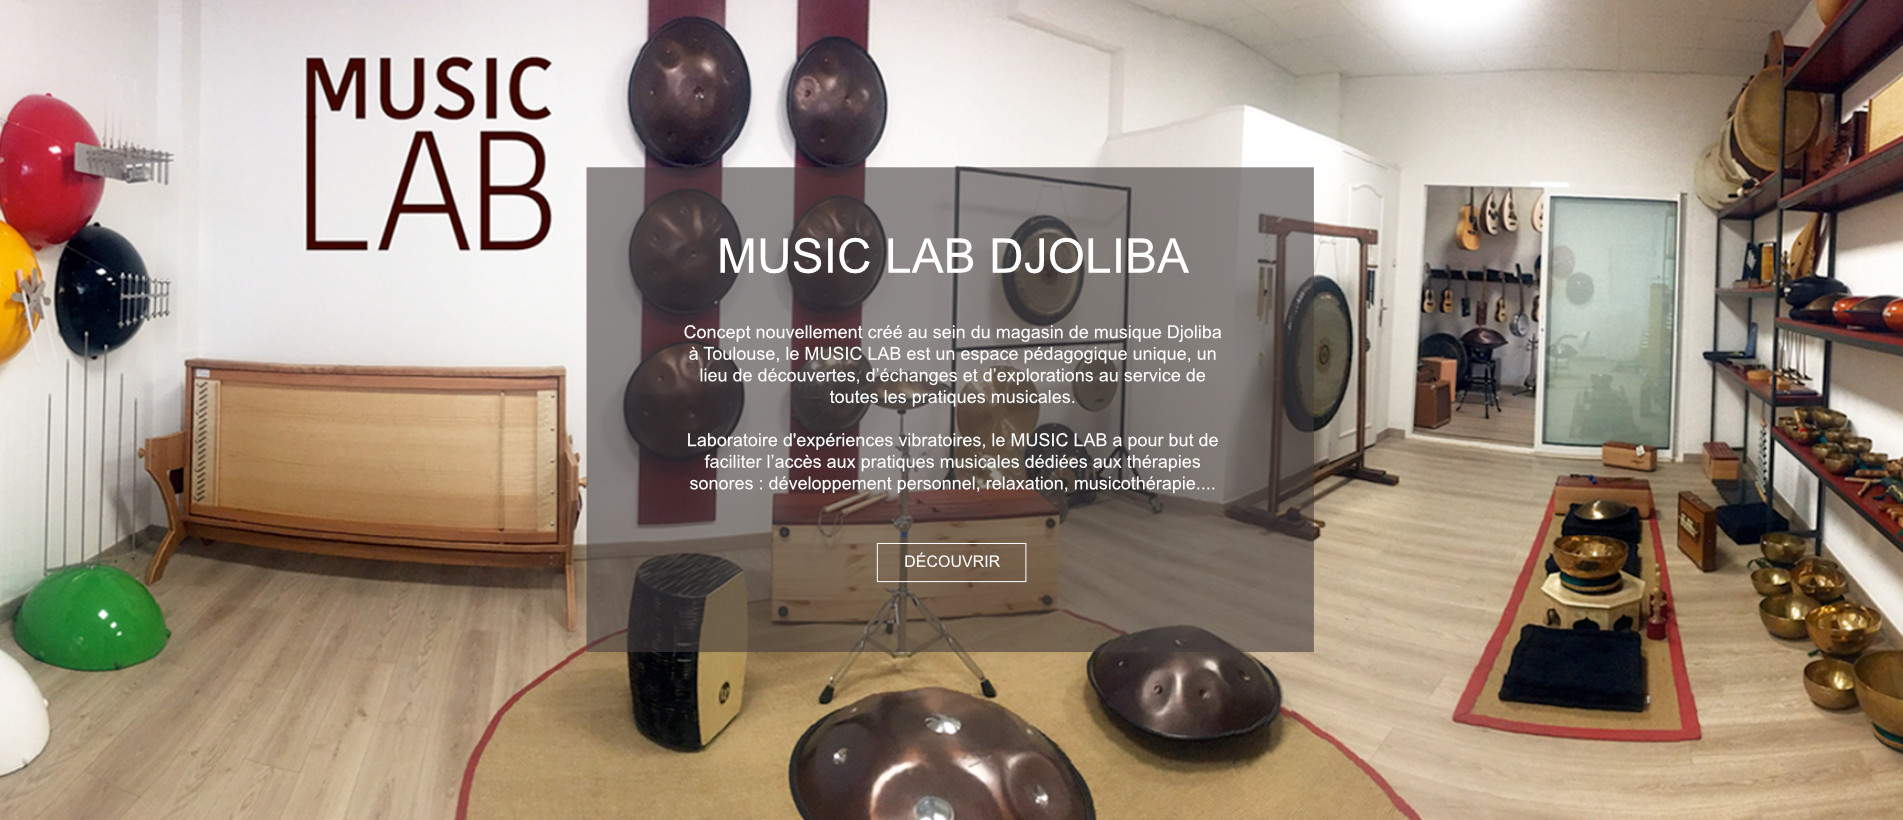 Music Lab Djoliba